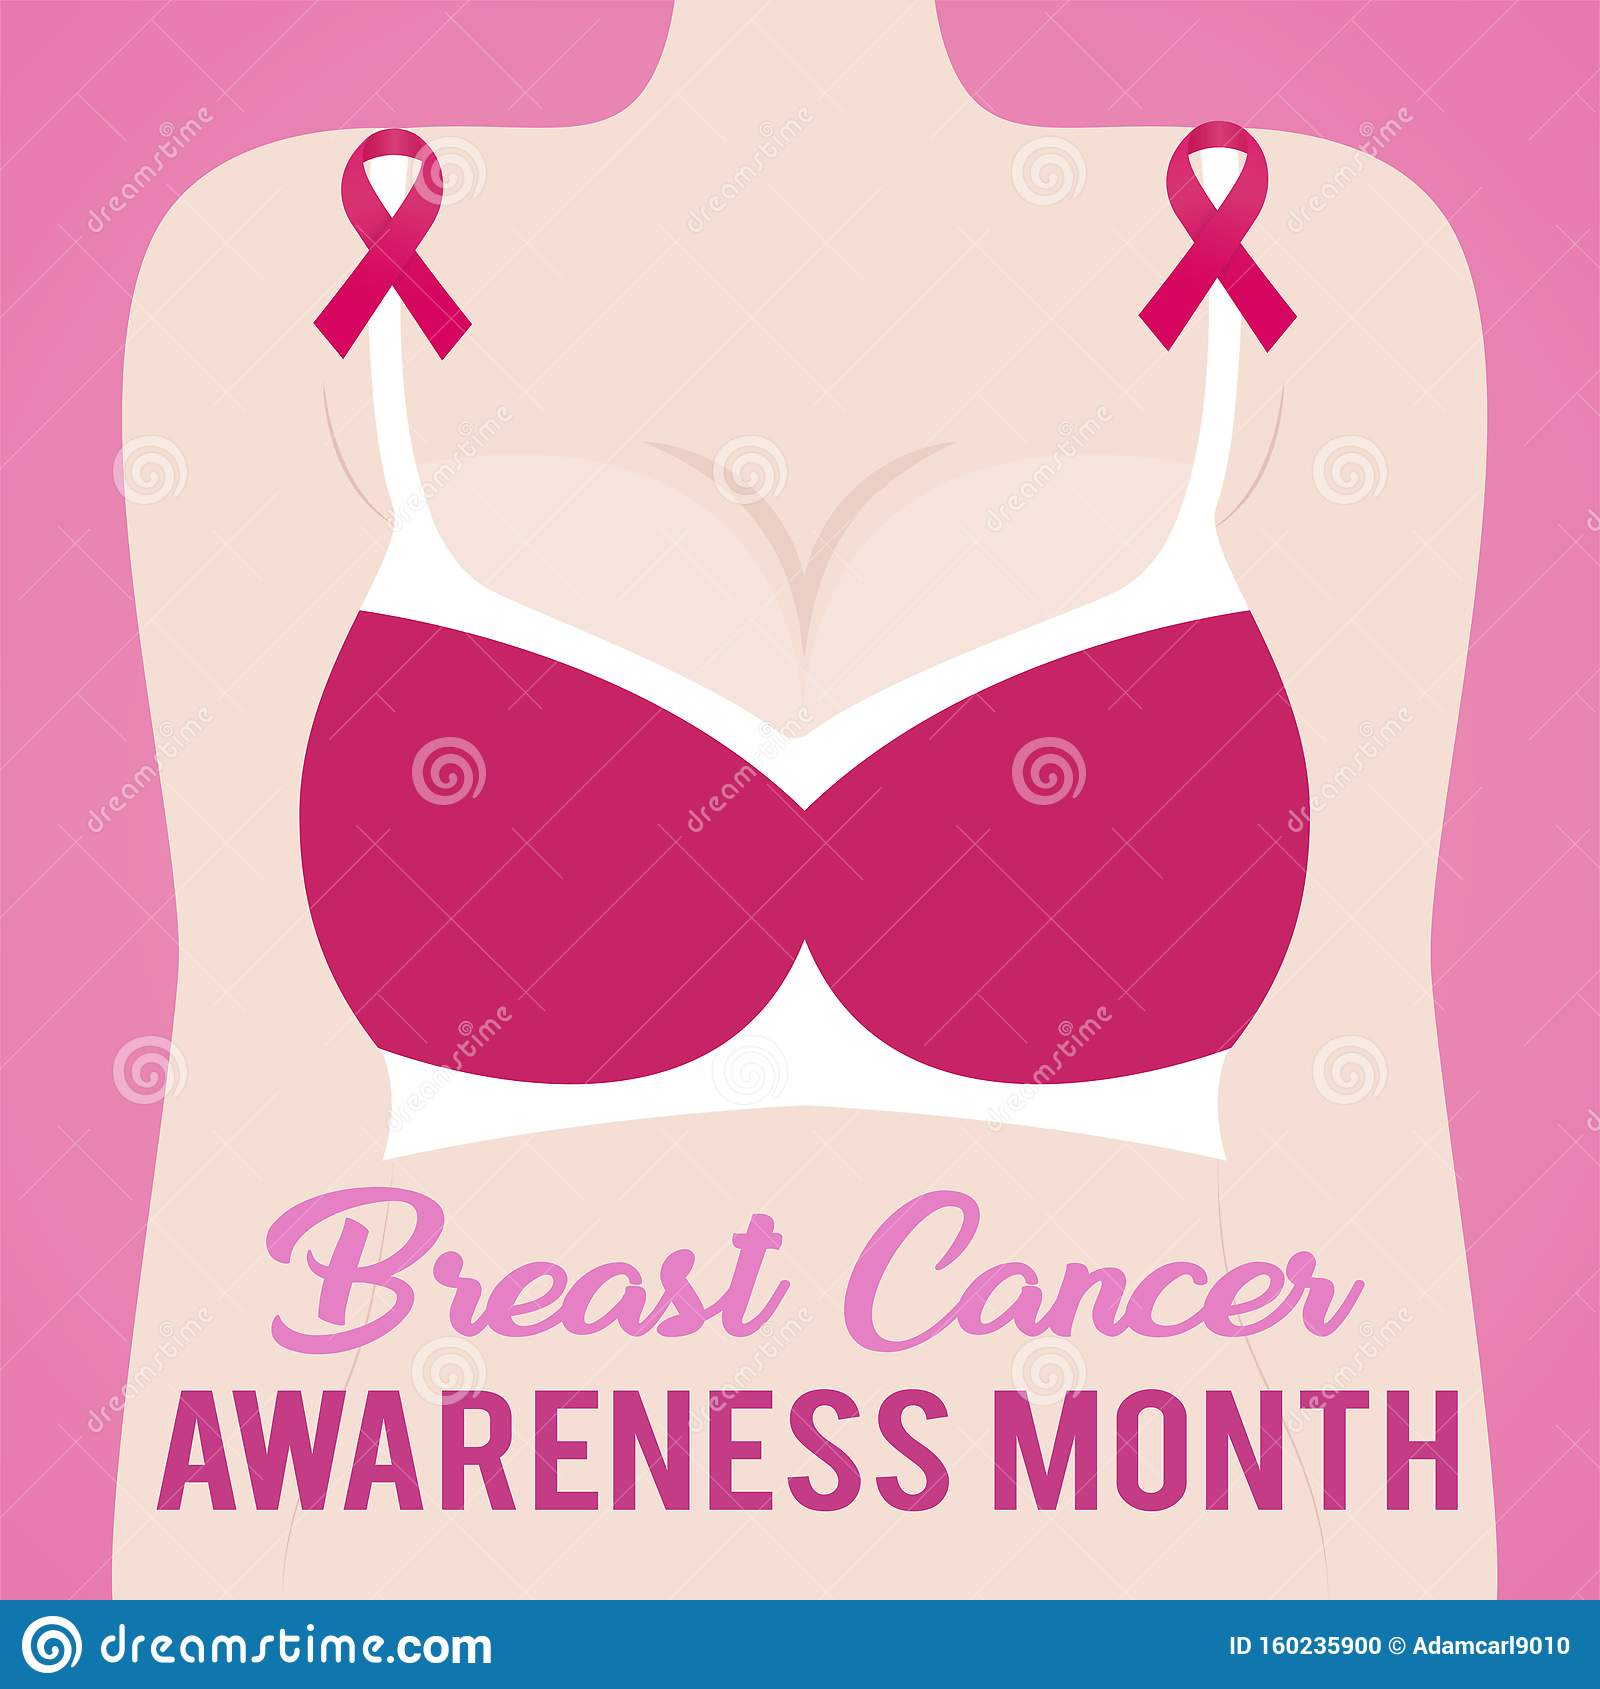 Breast Cancer Awareness Month With Female Body Bra And Pink Ribbon Stock Vector Illustration Of Quotes Motivation 160235900